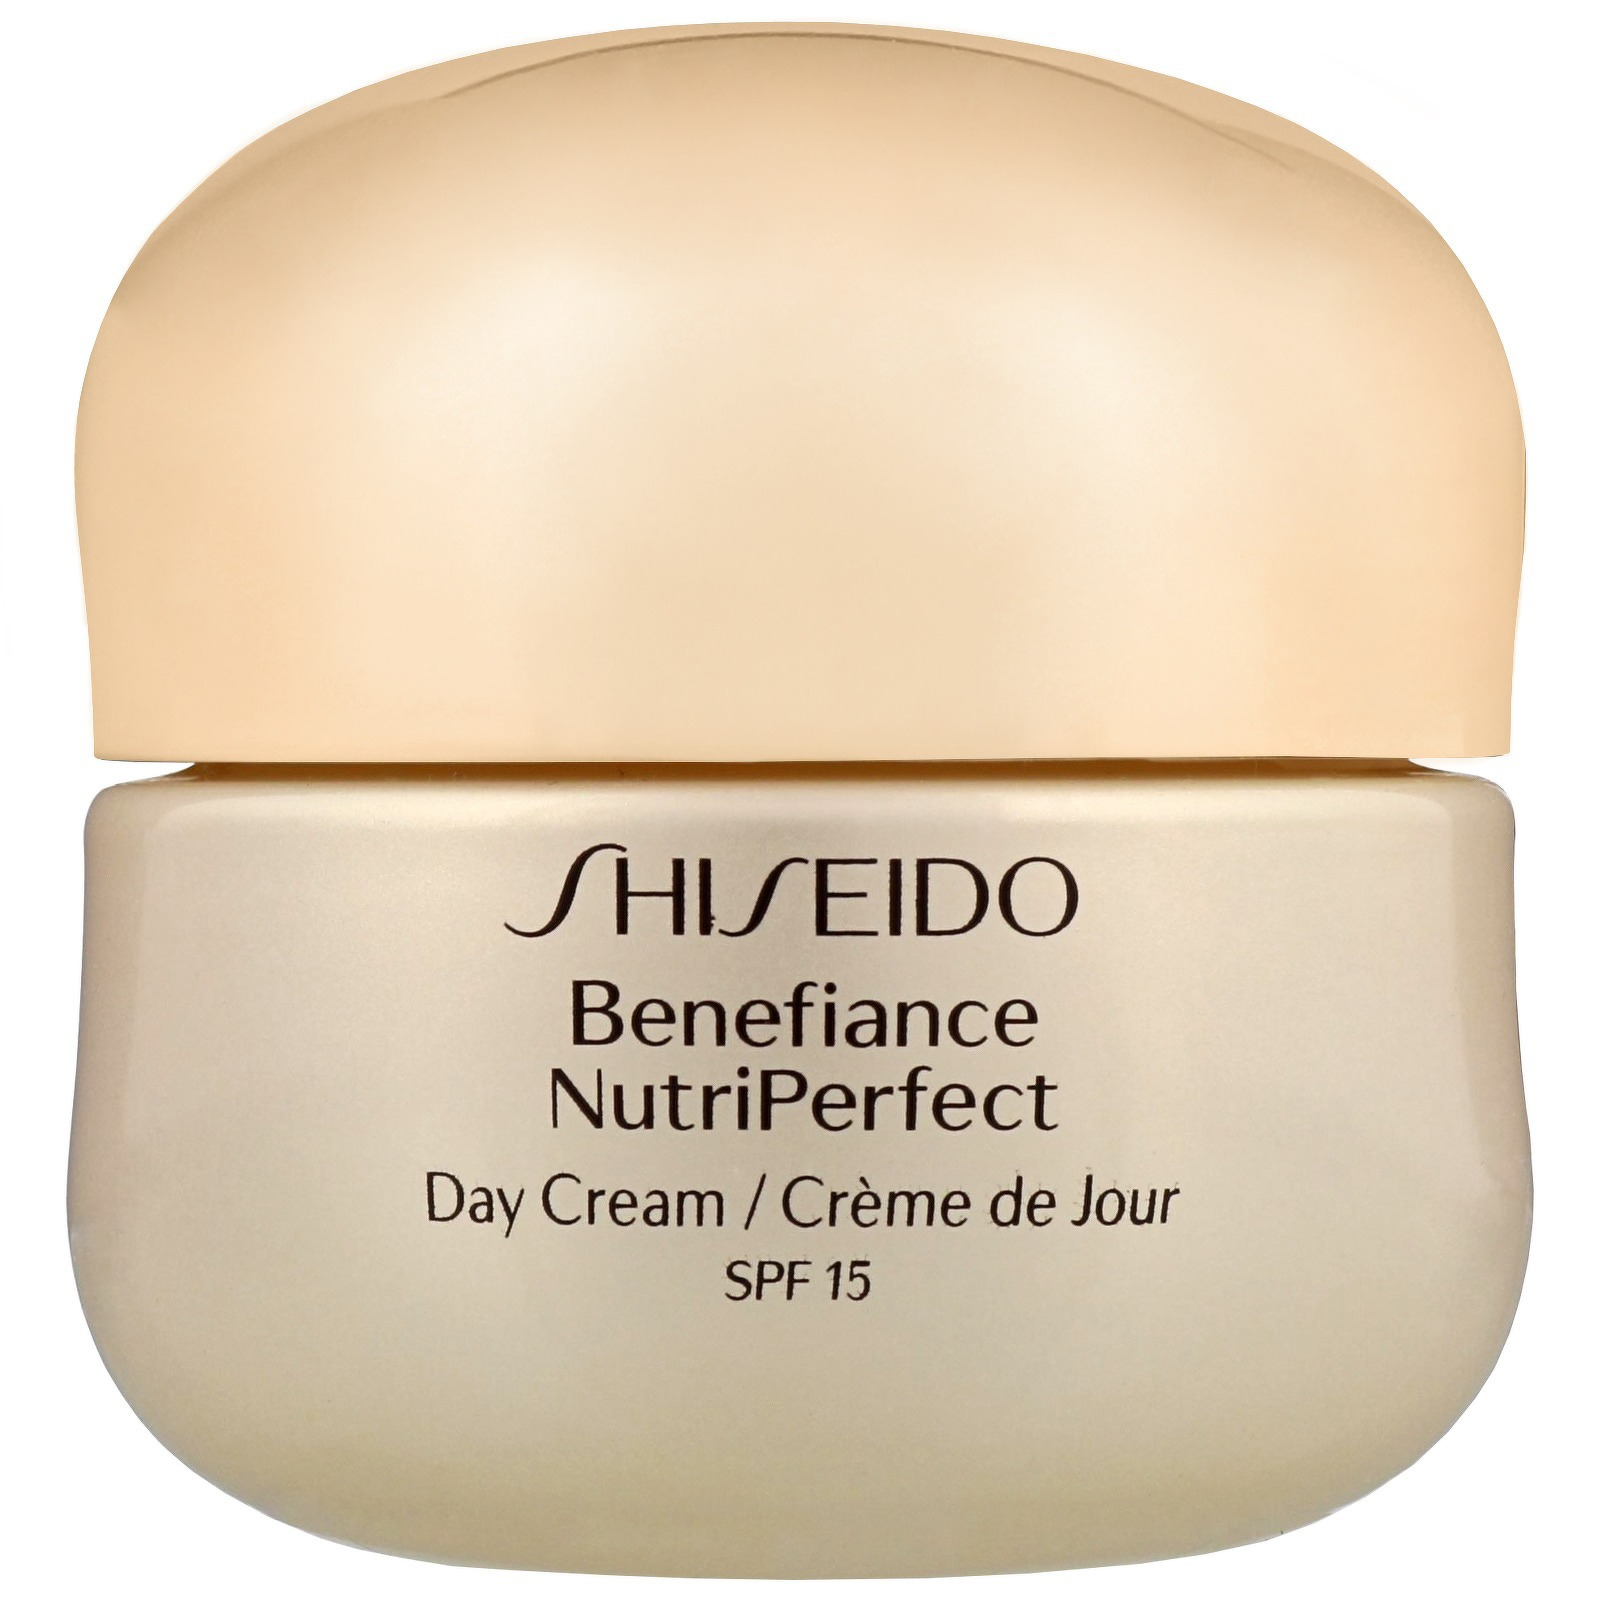 Shiseido Benefiance NutriPerfect Day Cream SPF15 50ml / 1.7 oz.